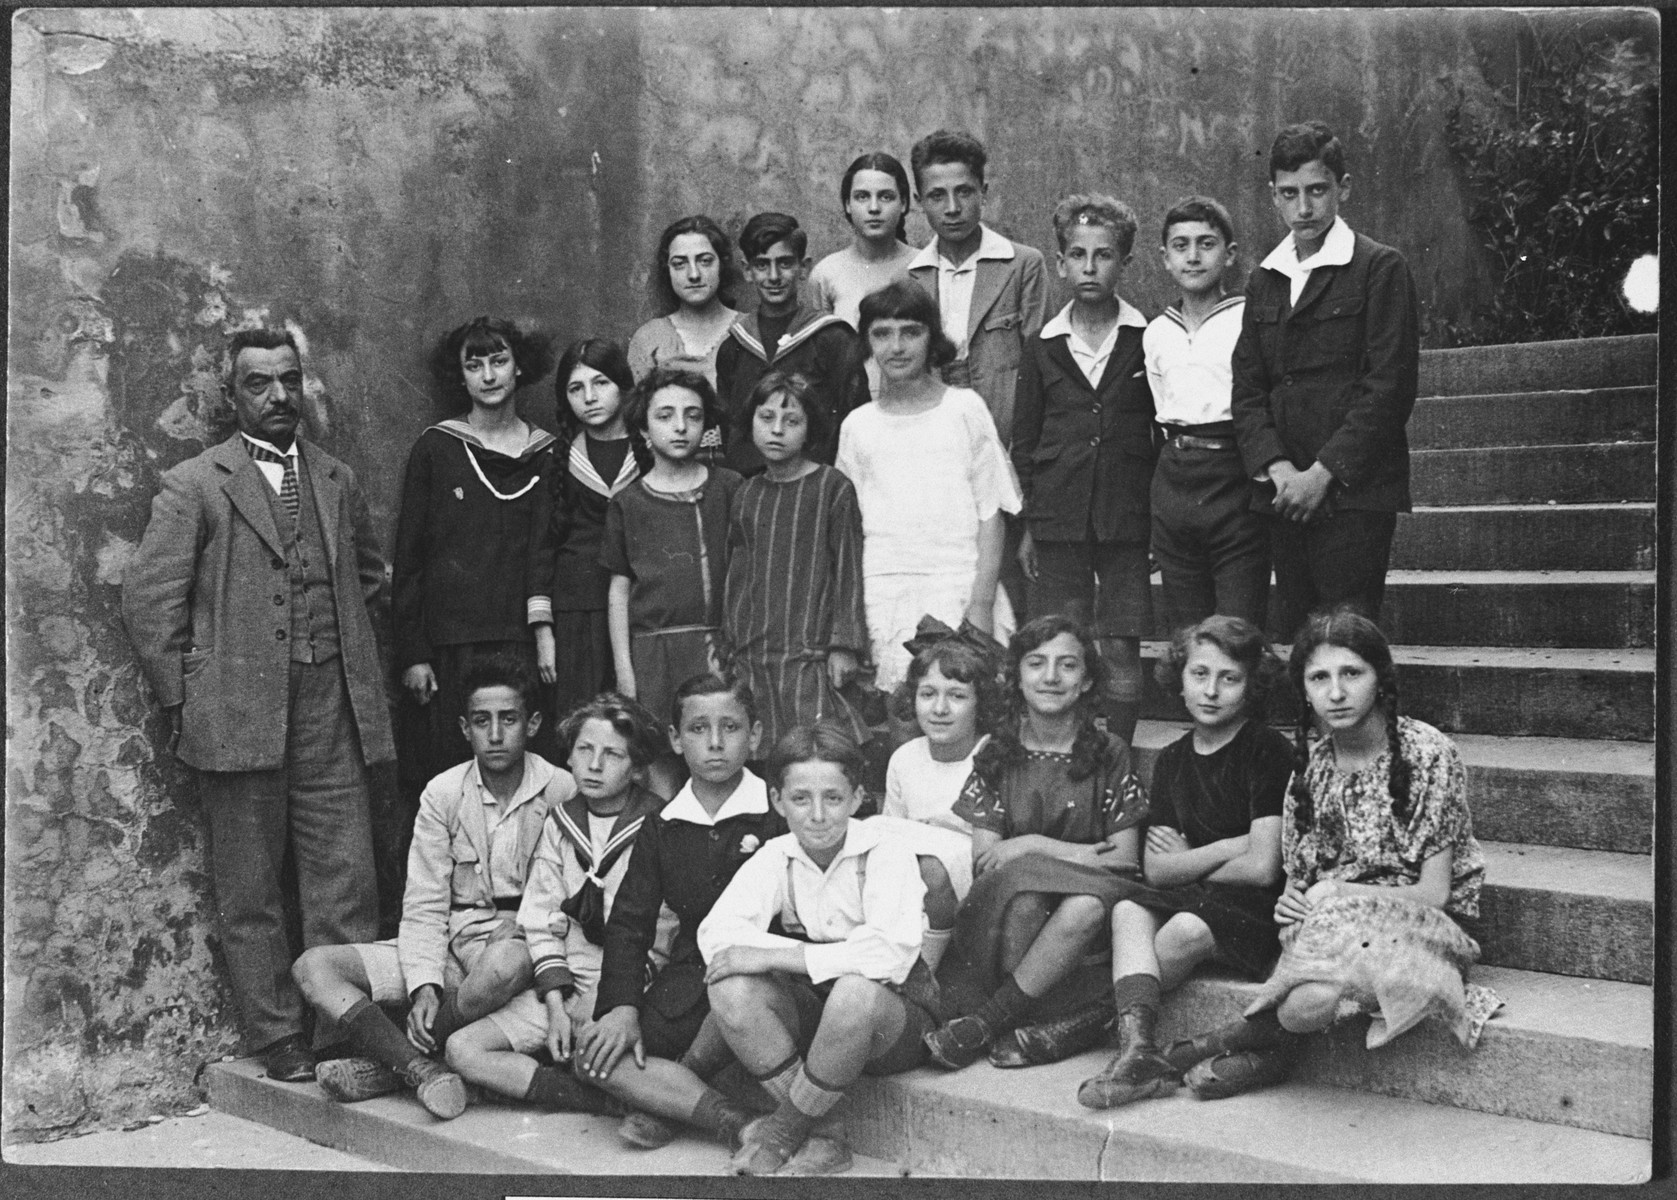 Class photo of school children in Florence, Italy.  Those pictured include Anna DiGioacchino.